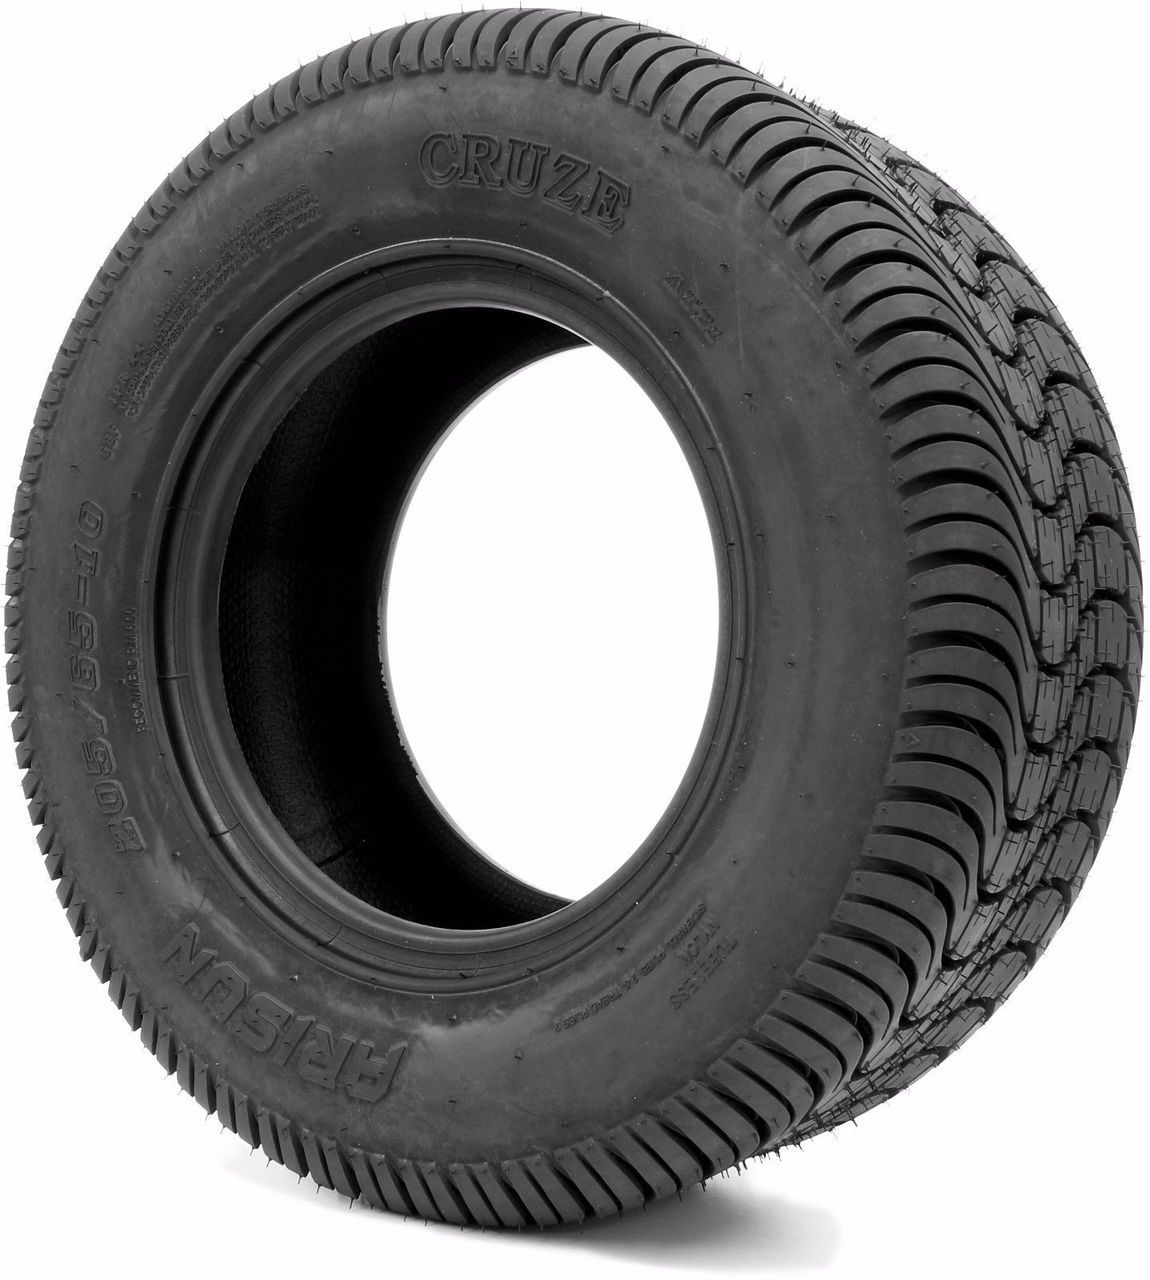 "ARISUN 205/65-10"" DOT GOLF CART TIRES - STREET TIRES"